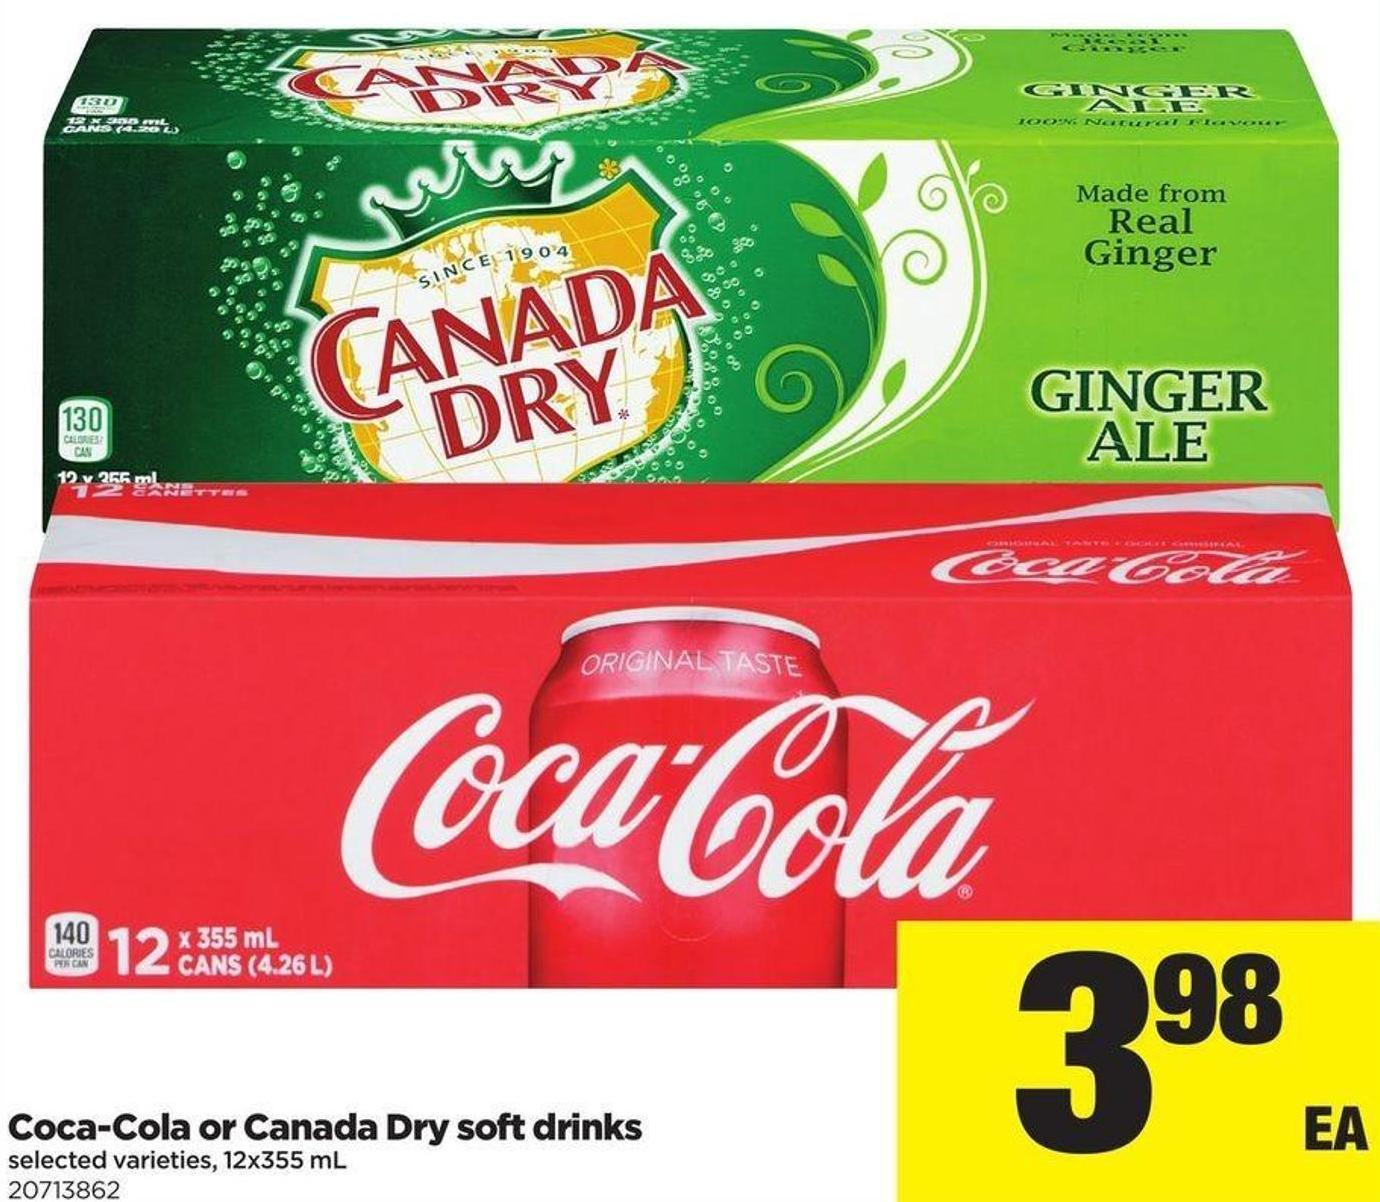 Coca-cola Or Canada Dry Soft Drinks - 12x355 mL